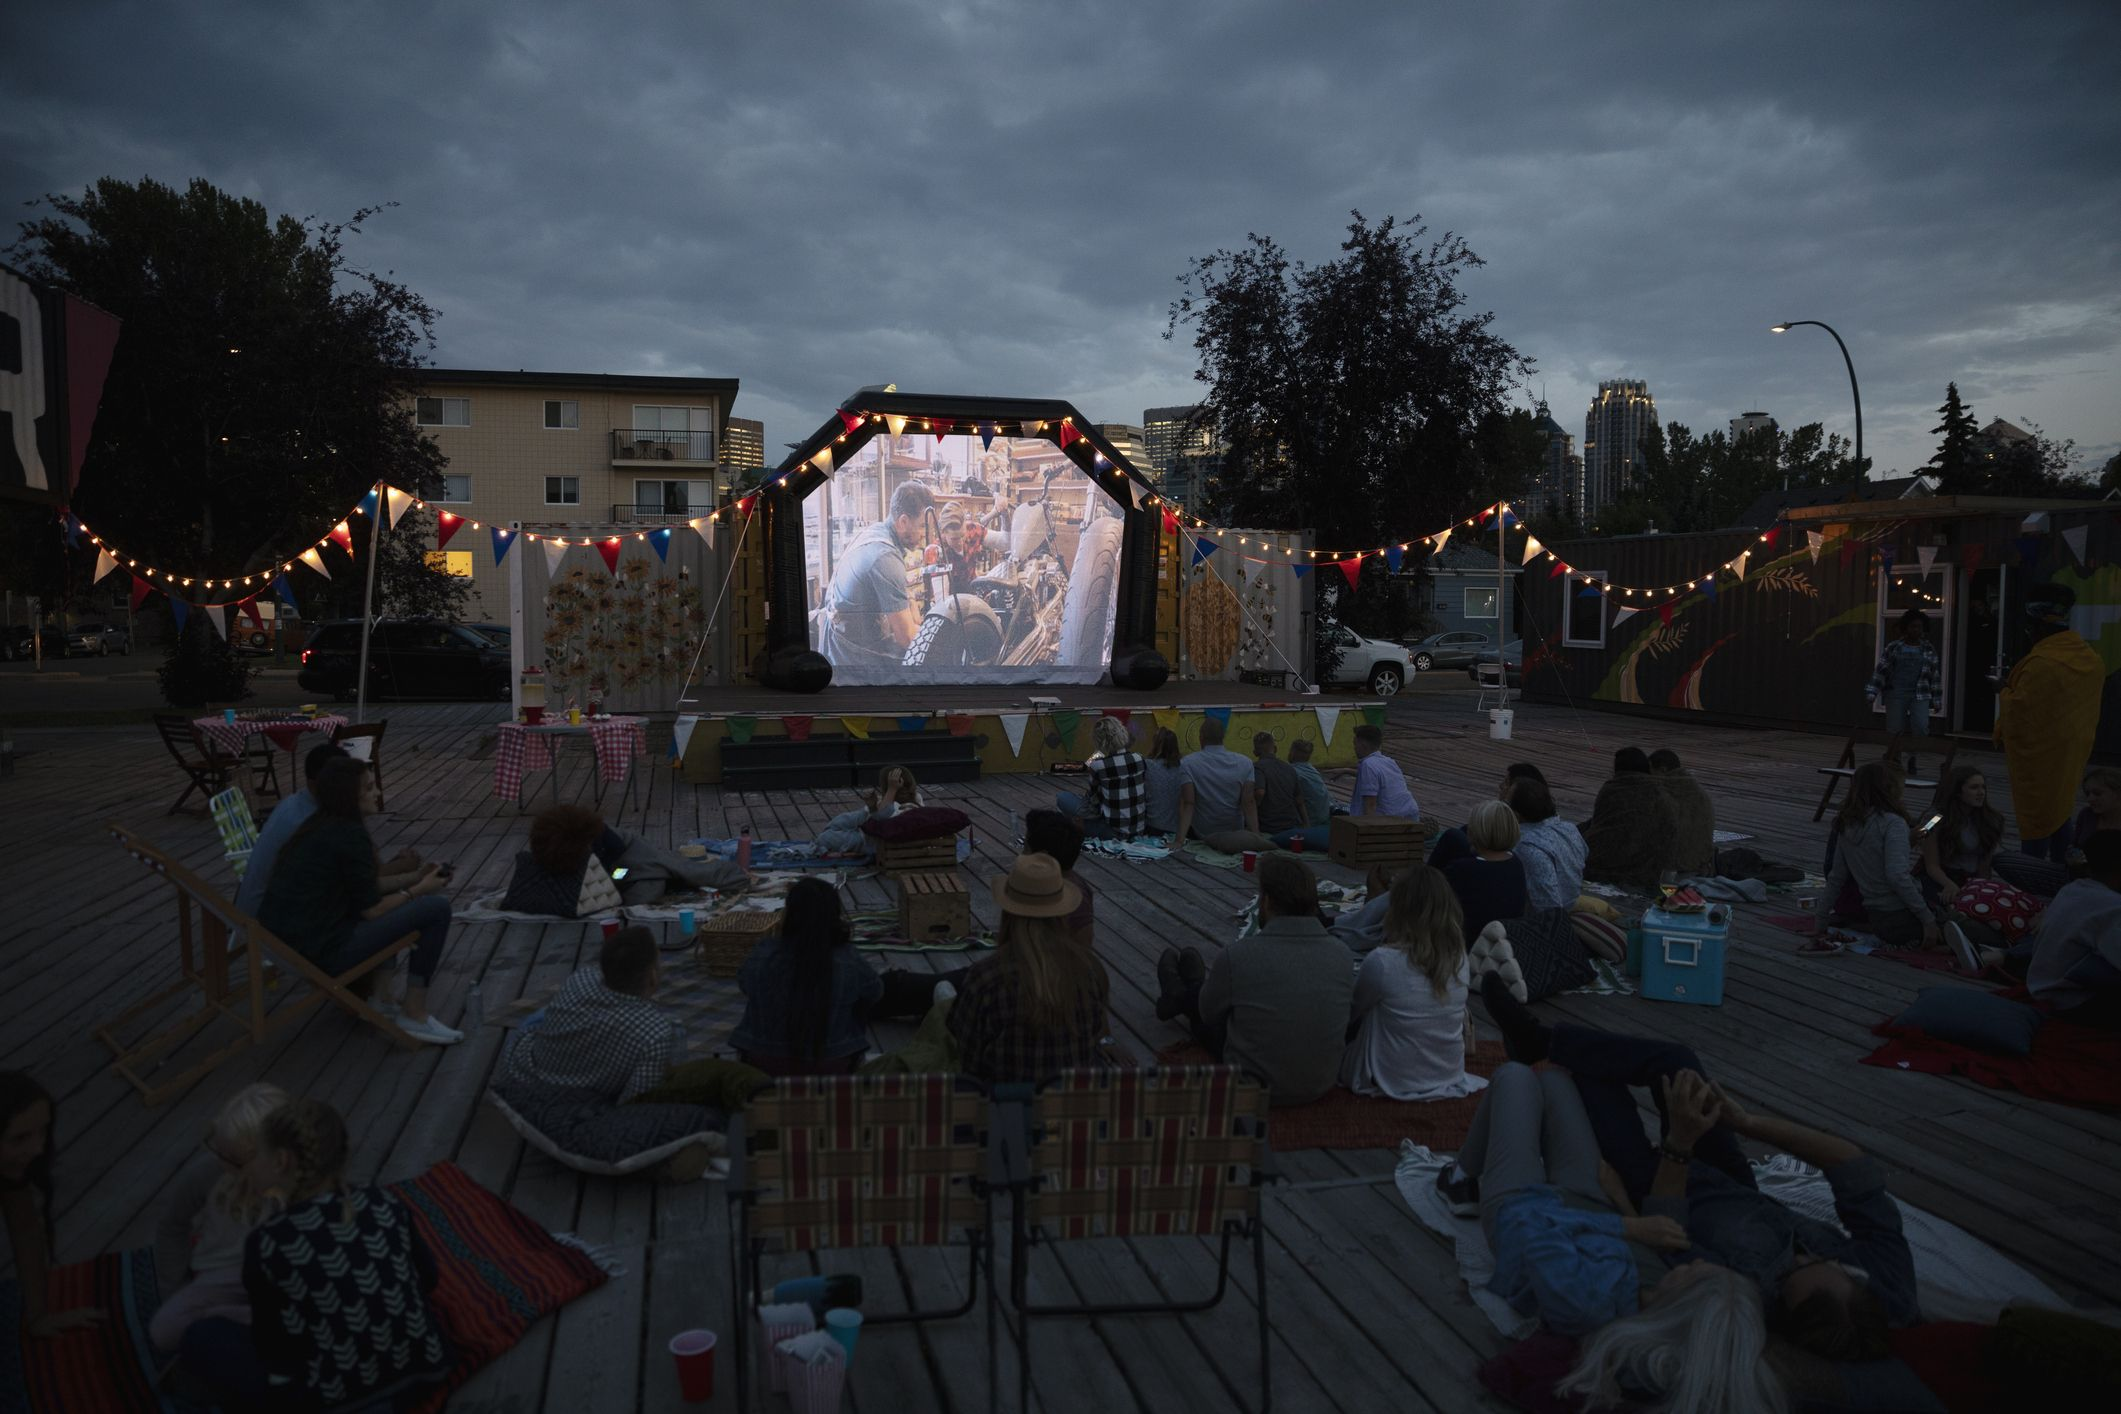 Crowd watching movie in the park